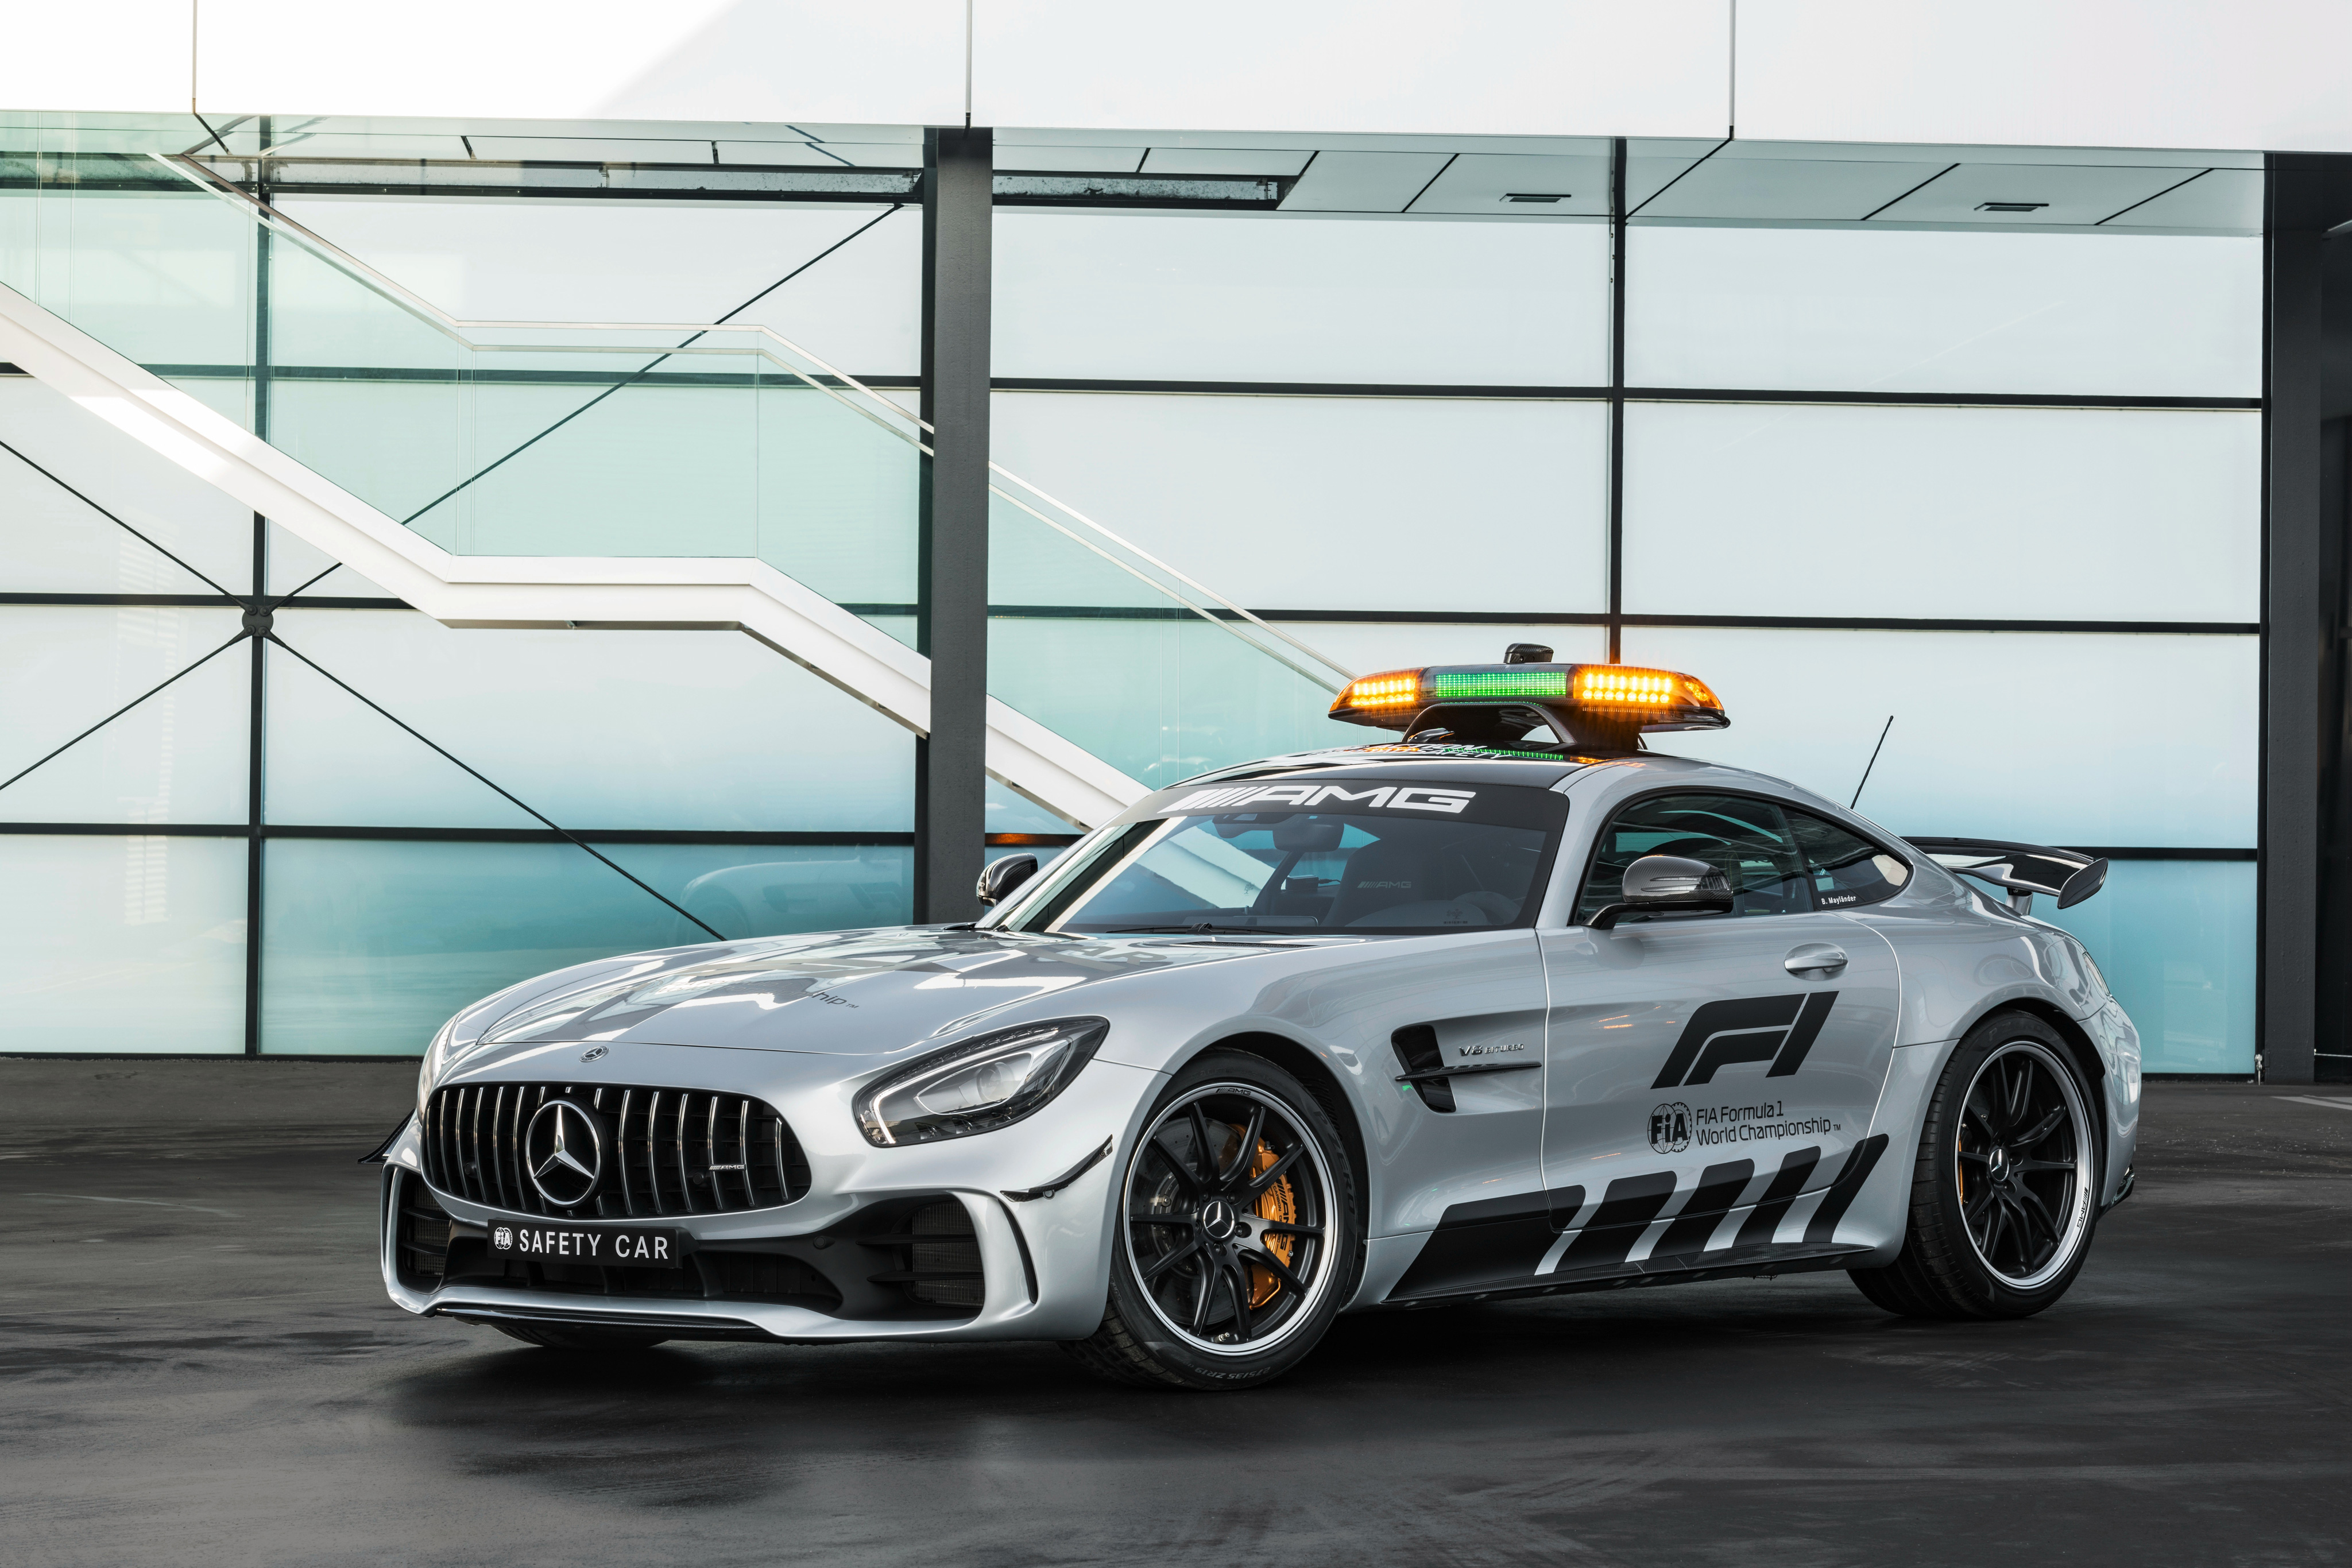 Mercedes Amg Gt R F1 Safety Car 2018 Hd Cars 4k Wallpapers Images